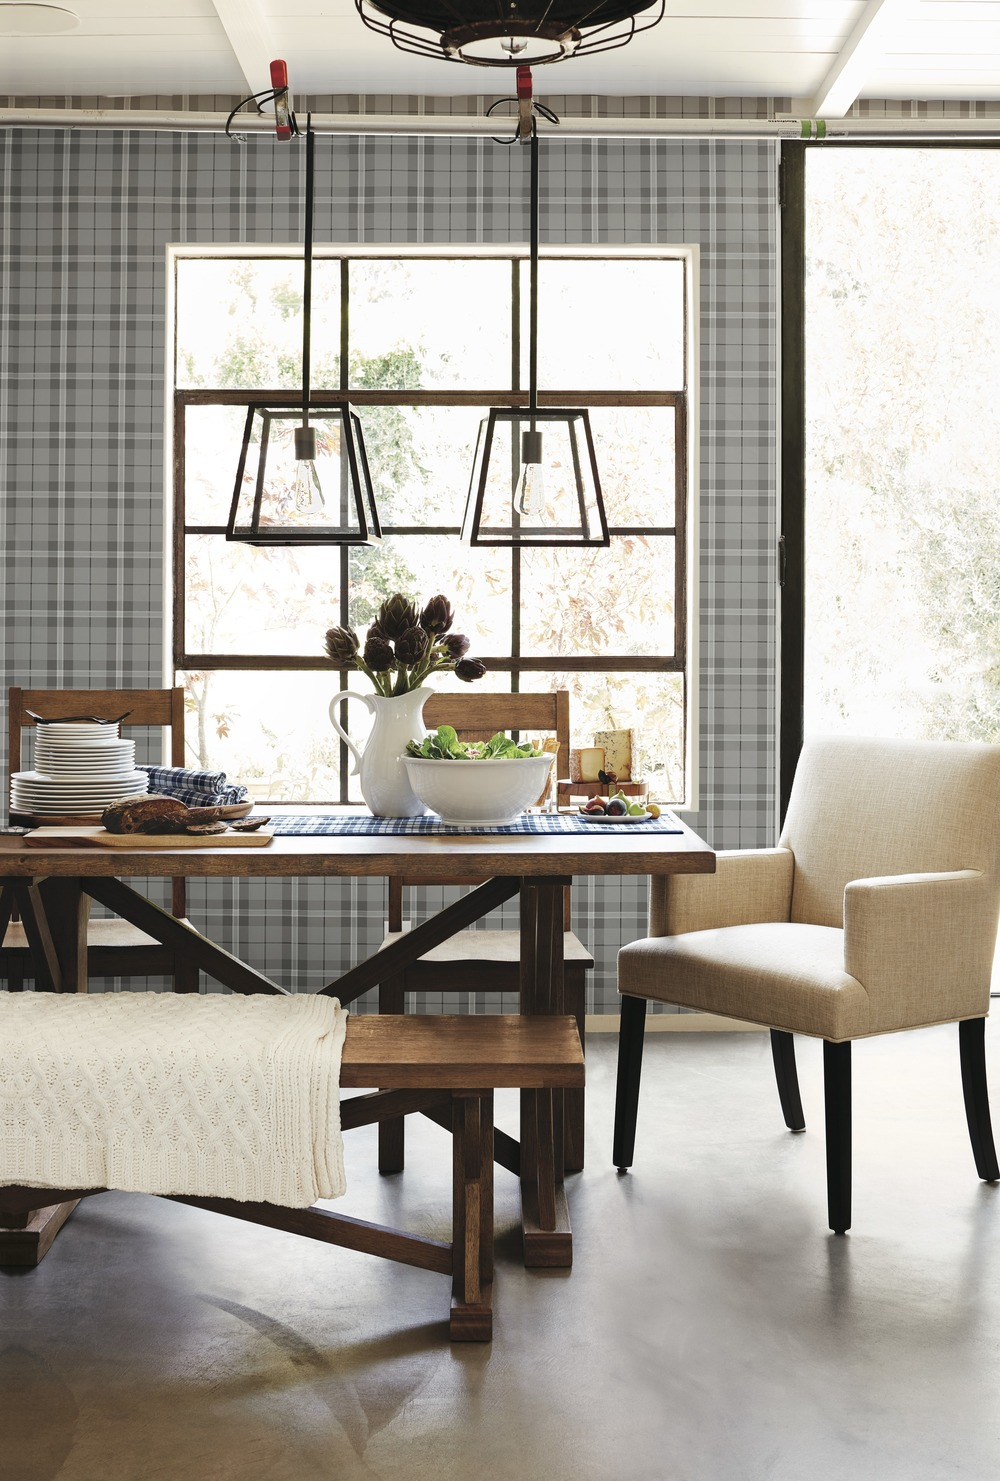 For a post-holiday brunch, mix and match a blue plaid table runner with a cable knit throw to give the room a winter feel without an overdose on holiday cheer, like these from Target.